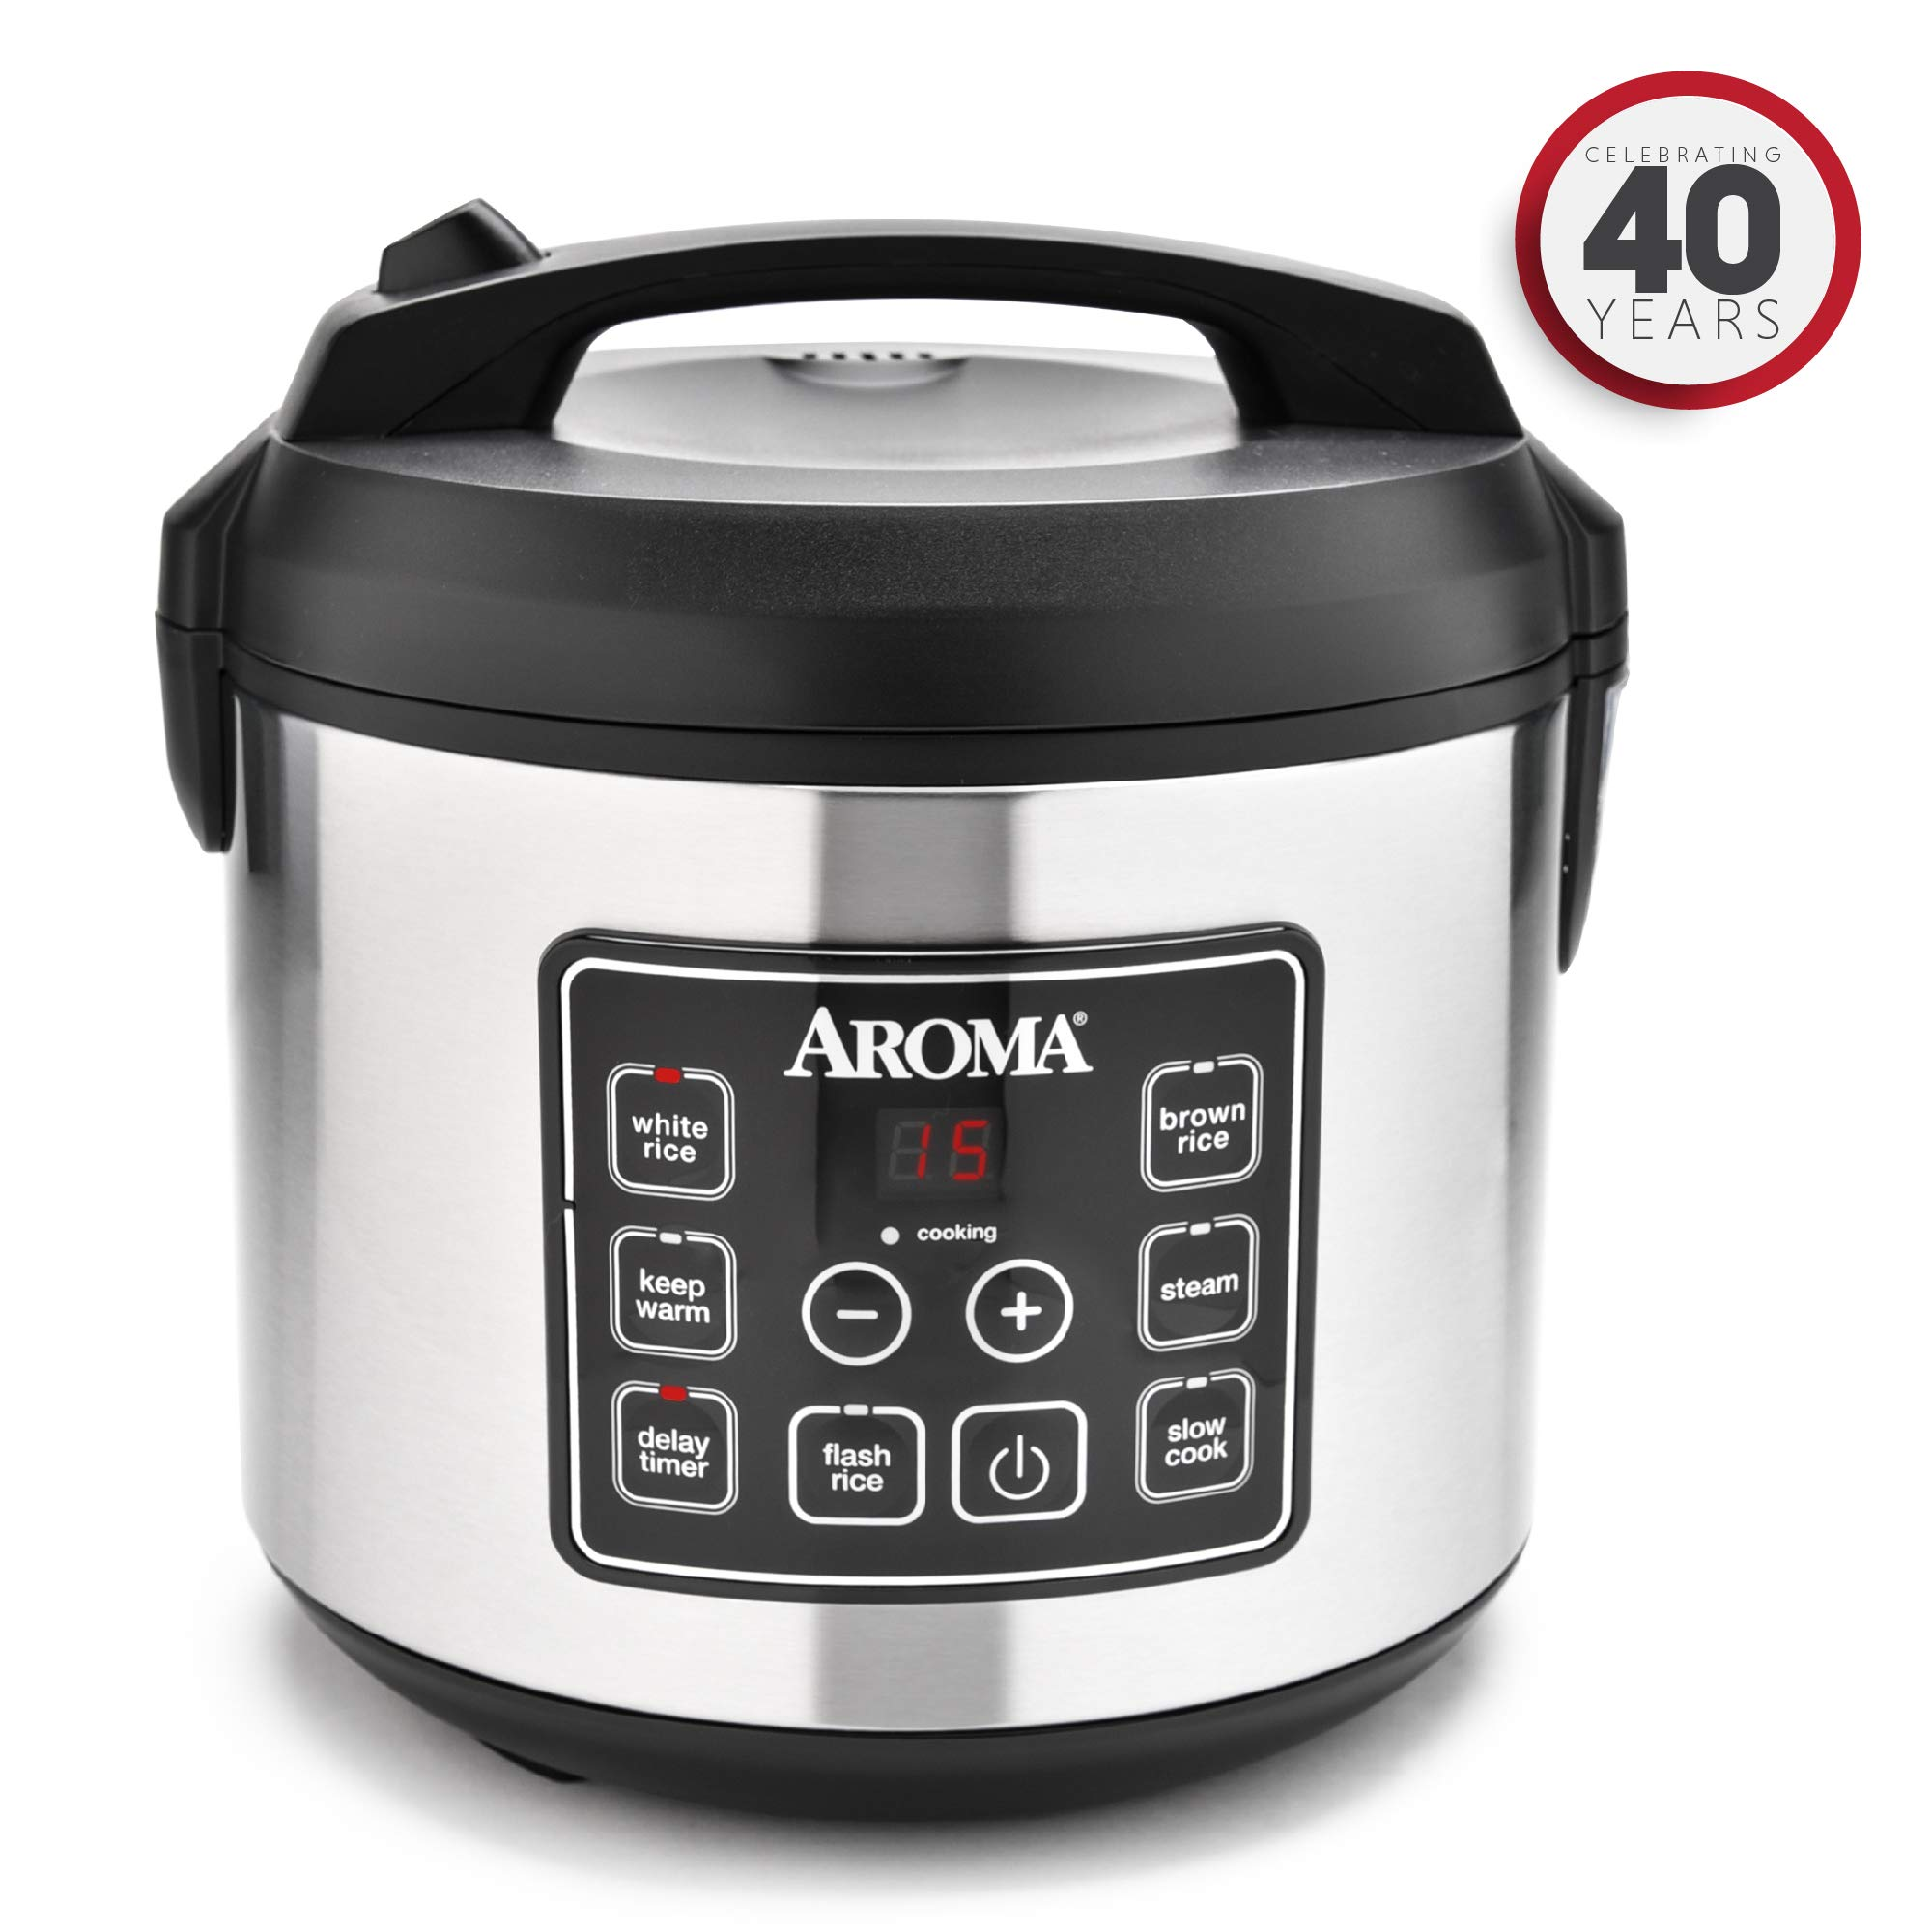 Aroma Housewares 20 Cup Cooked (10 cup uncooked) Digital Rice Cooker, Slow Cooker, Food Steamer, SS Exterior (ARC-150SB) by Aroma Housewares